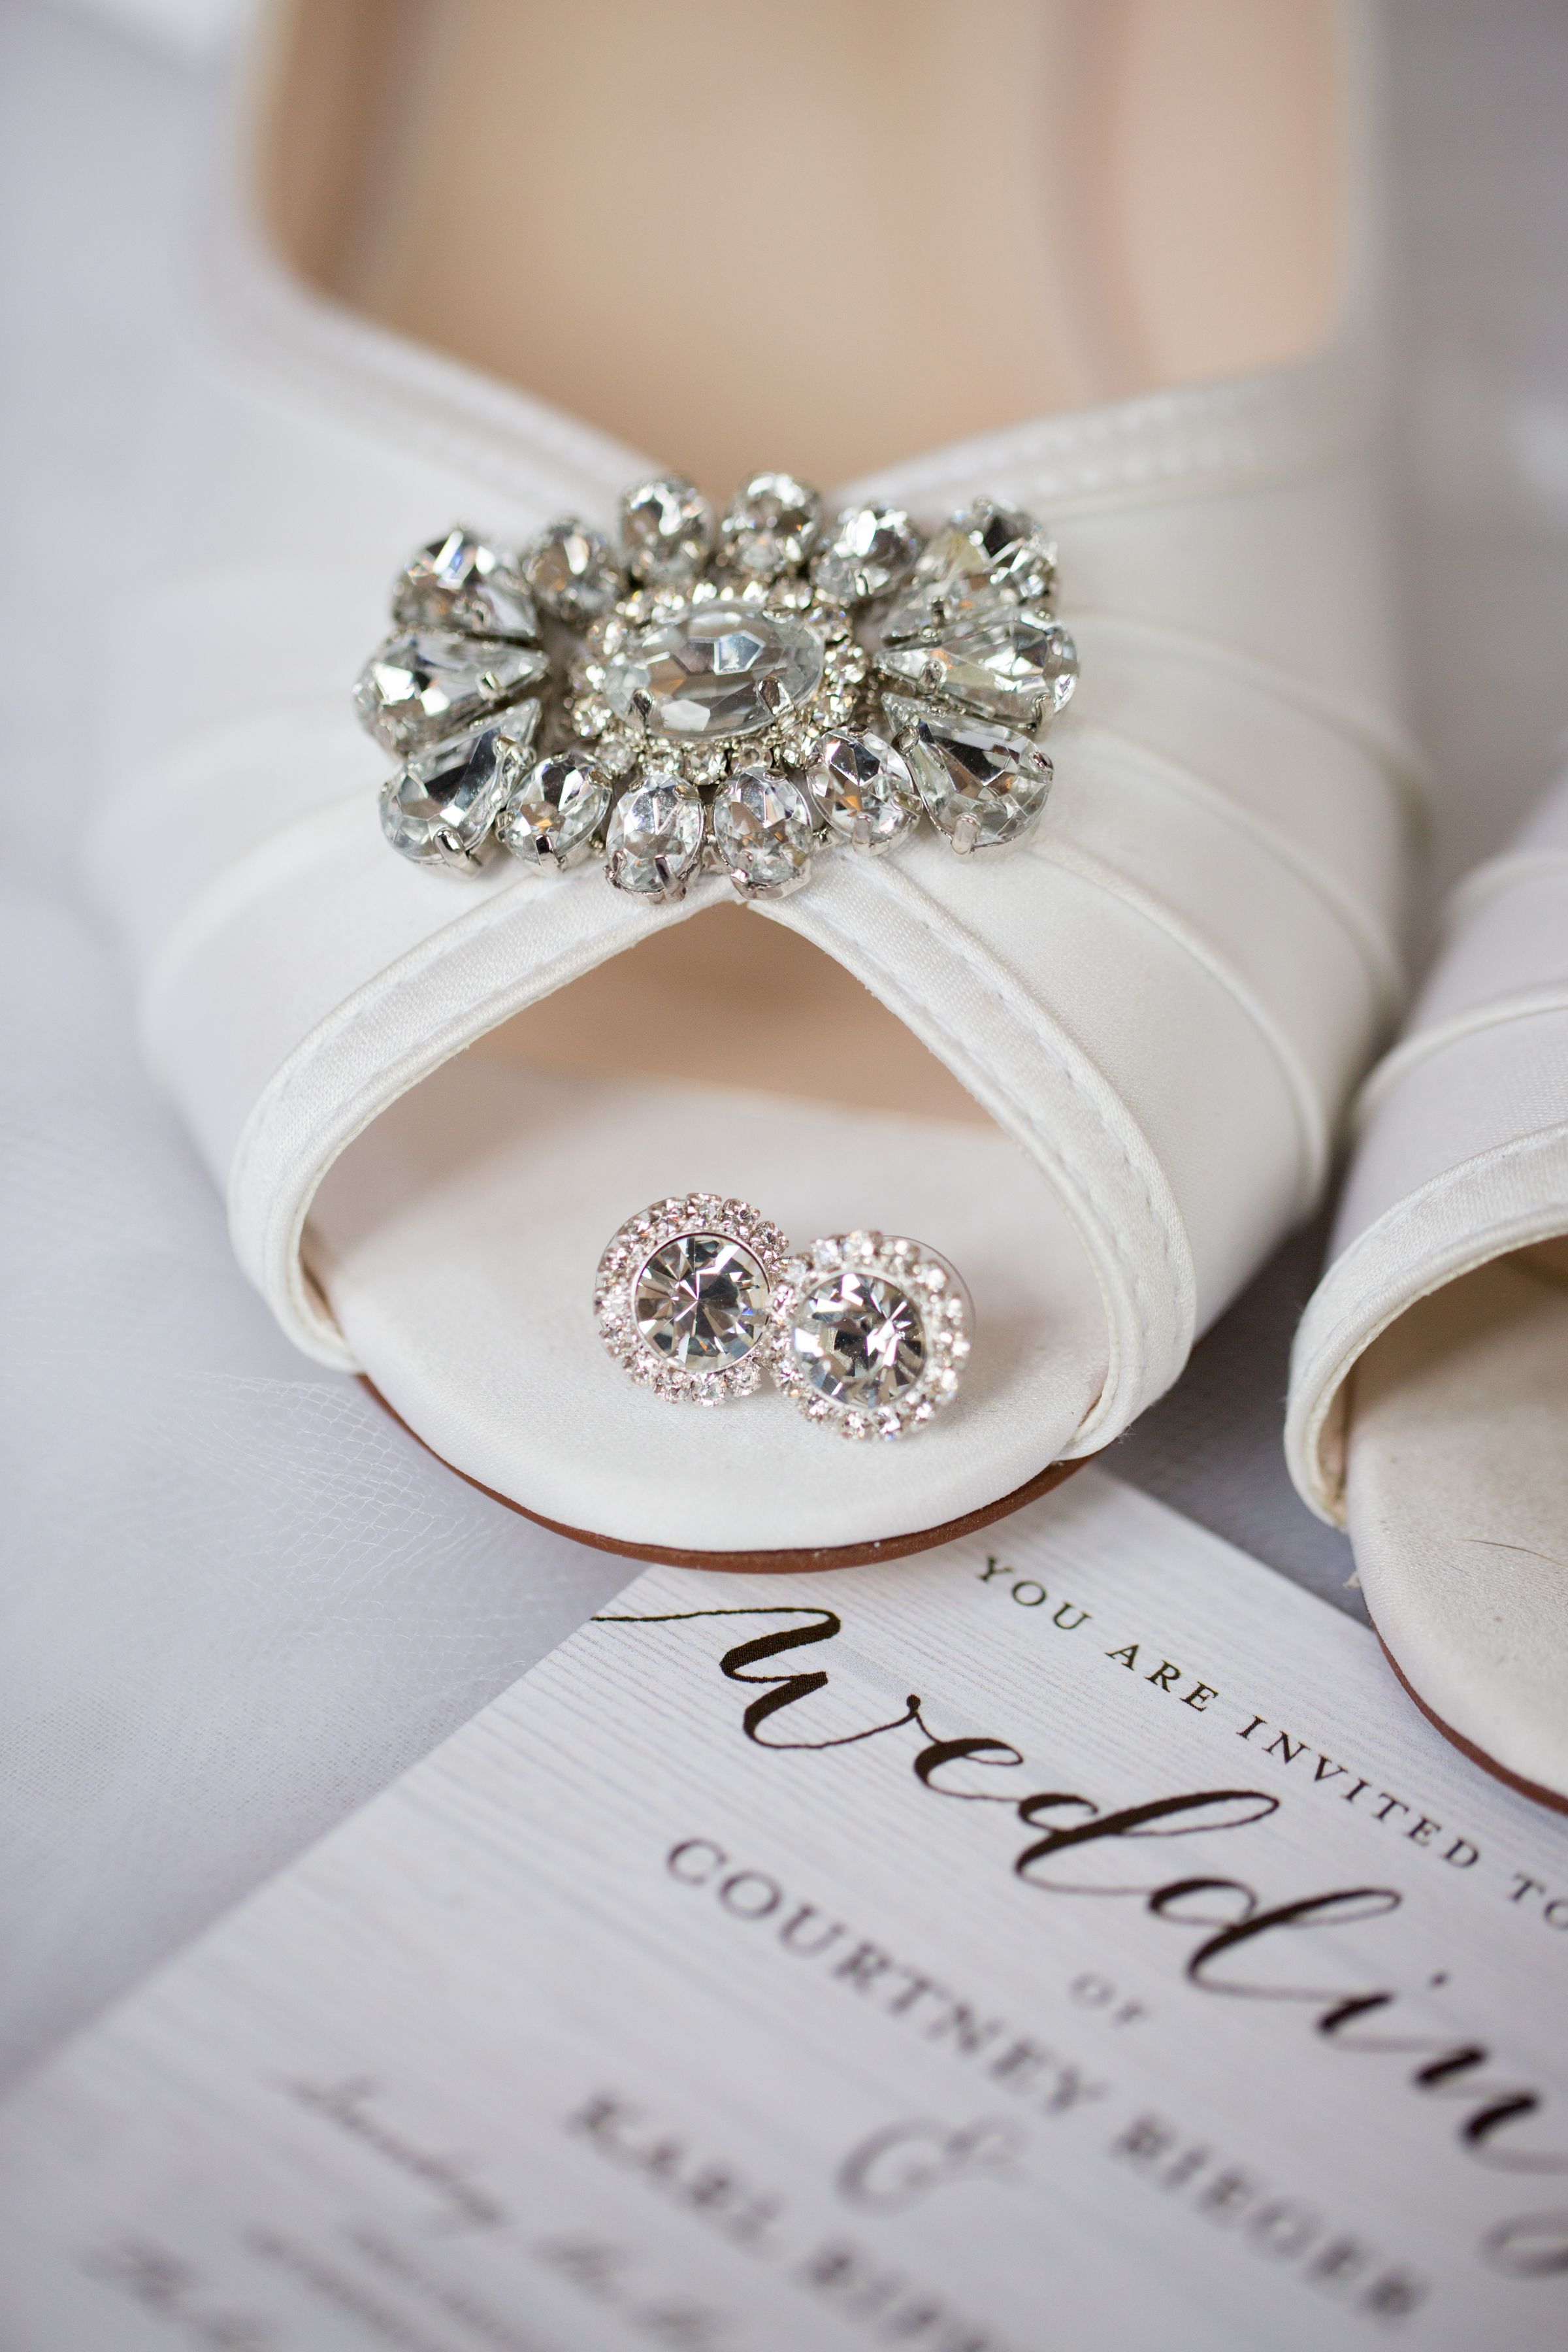 detail image of wedding day earrings with shoes by detroit wedding photographer